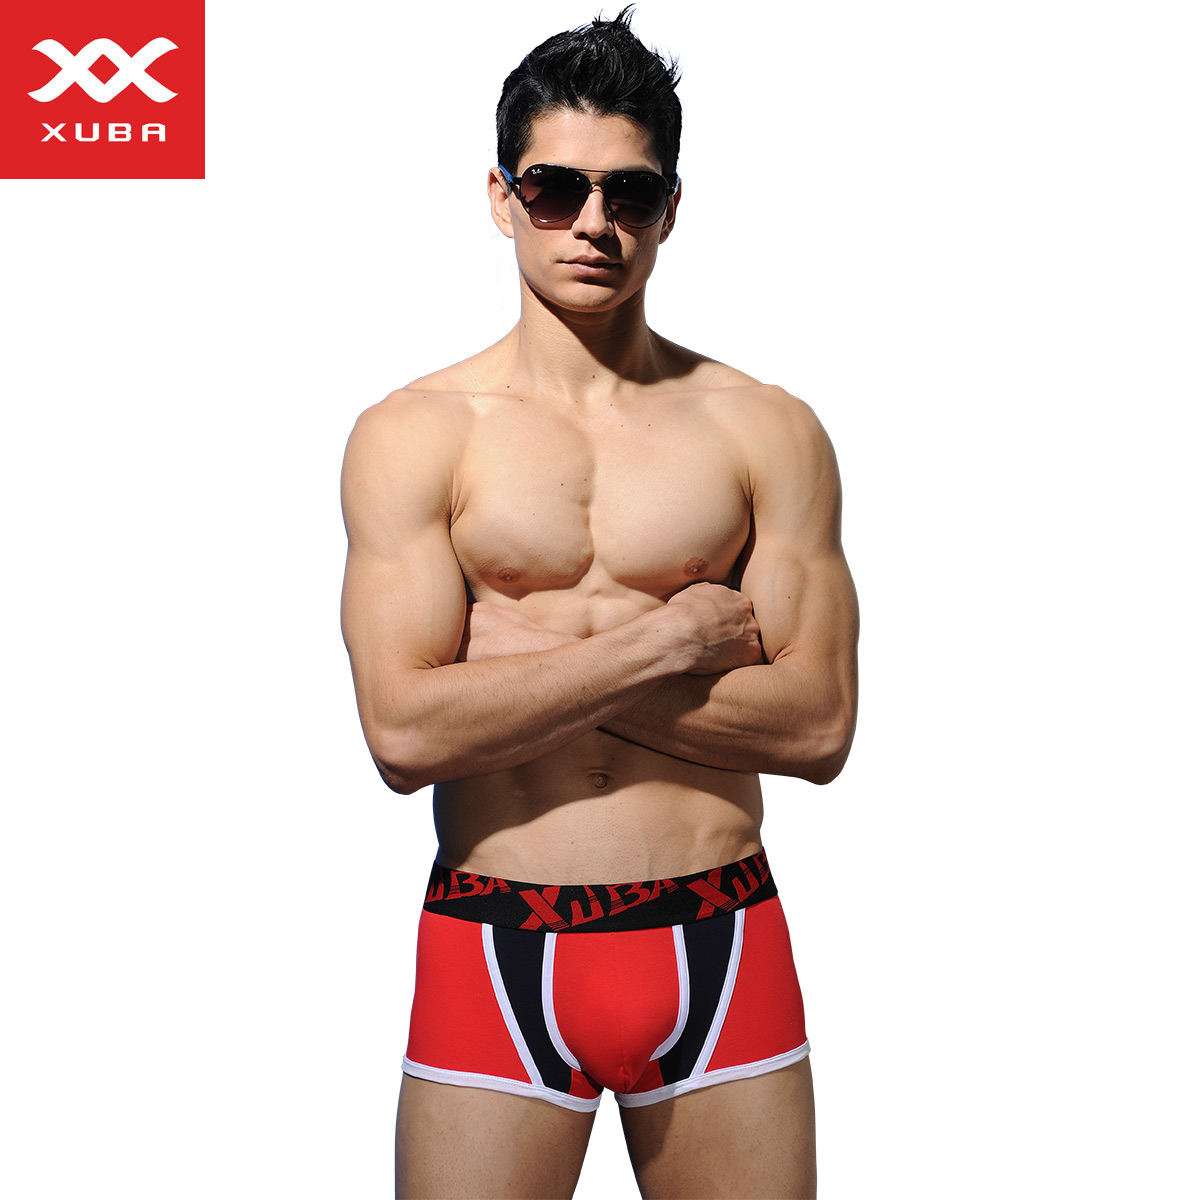 Трусы Xu Pakistan Sexy Underwear Men Pants Senior New Fashion Leisure Cotton